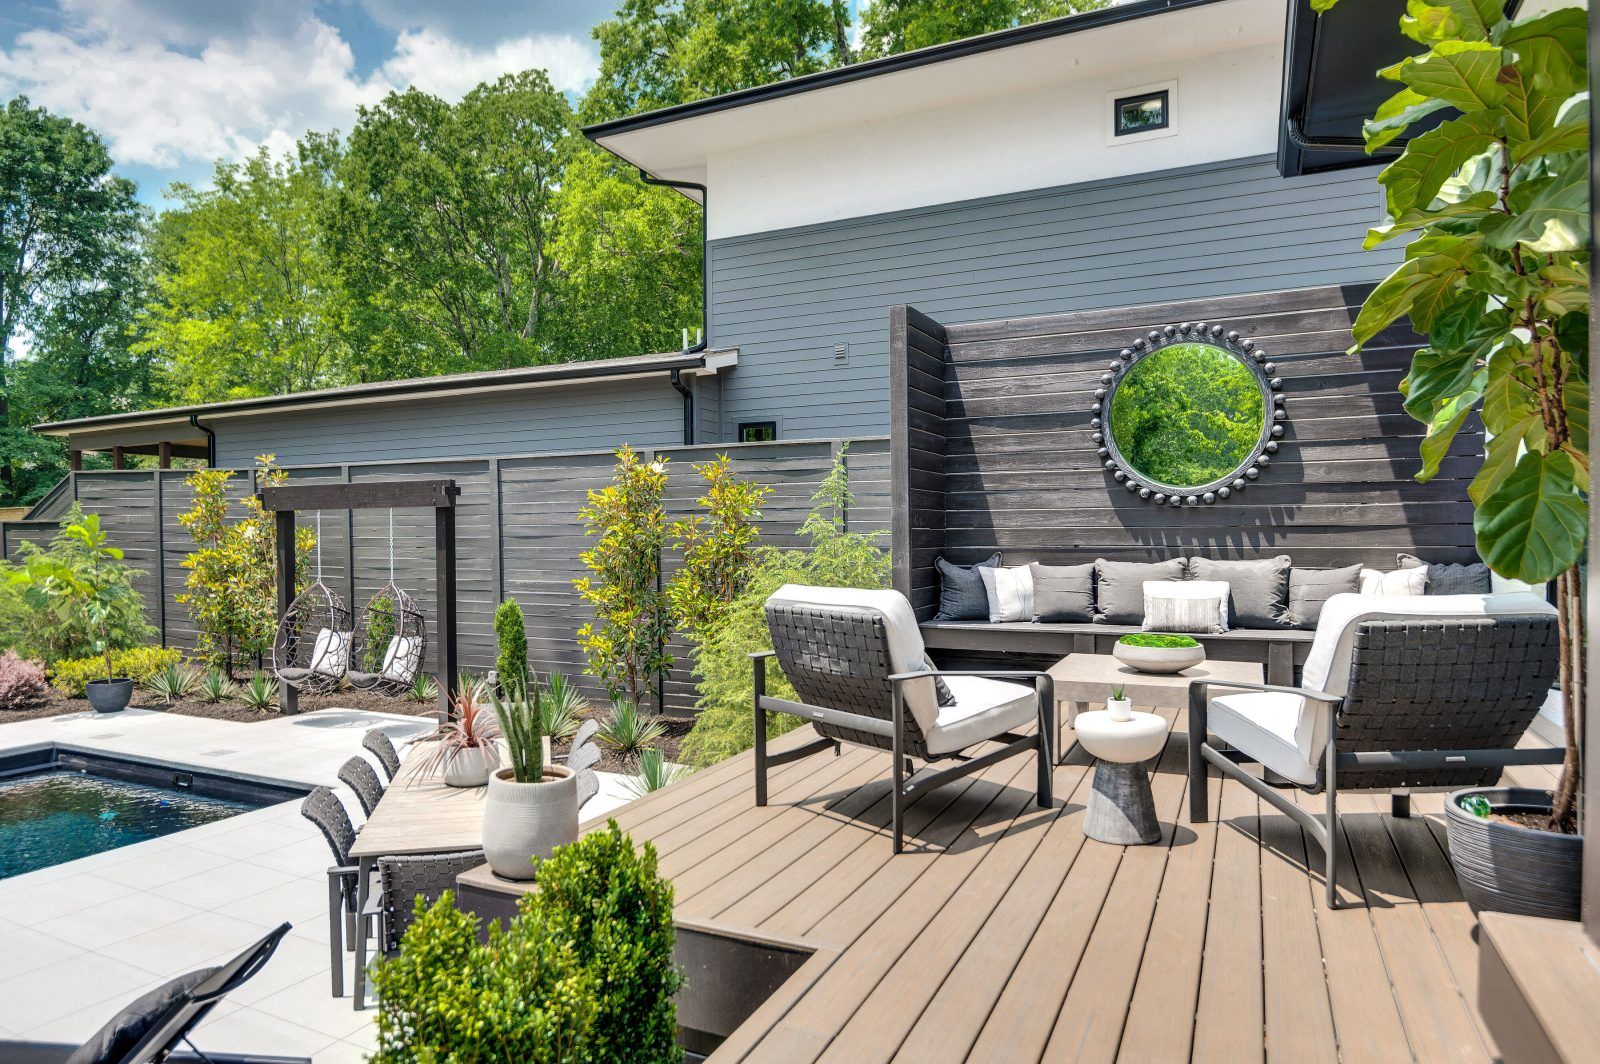 Green Hills TN outdoor patio surrounded by trees